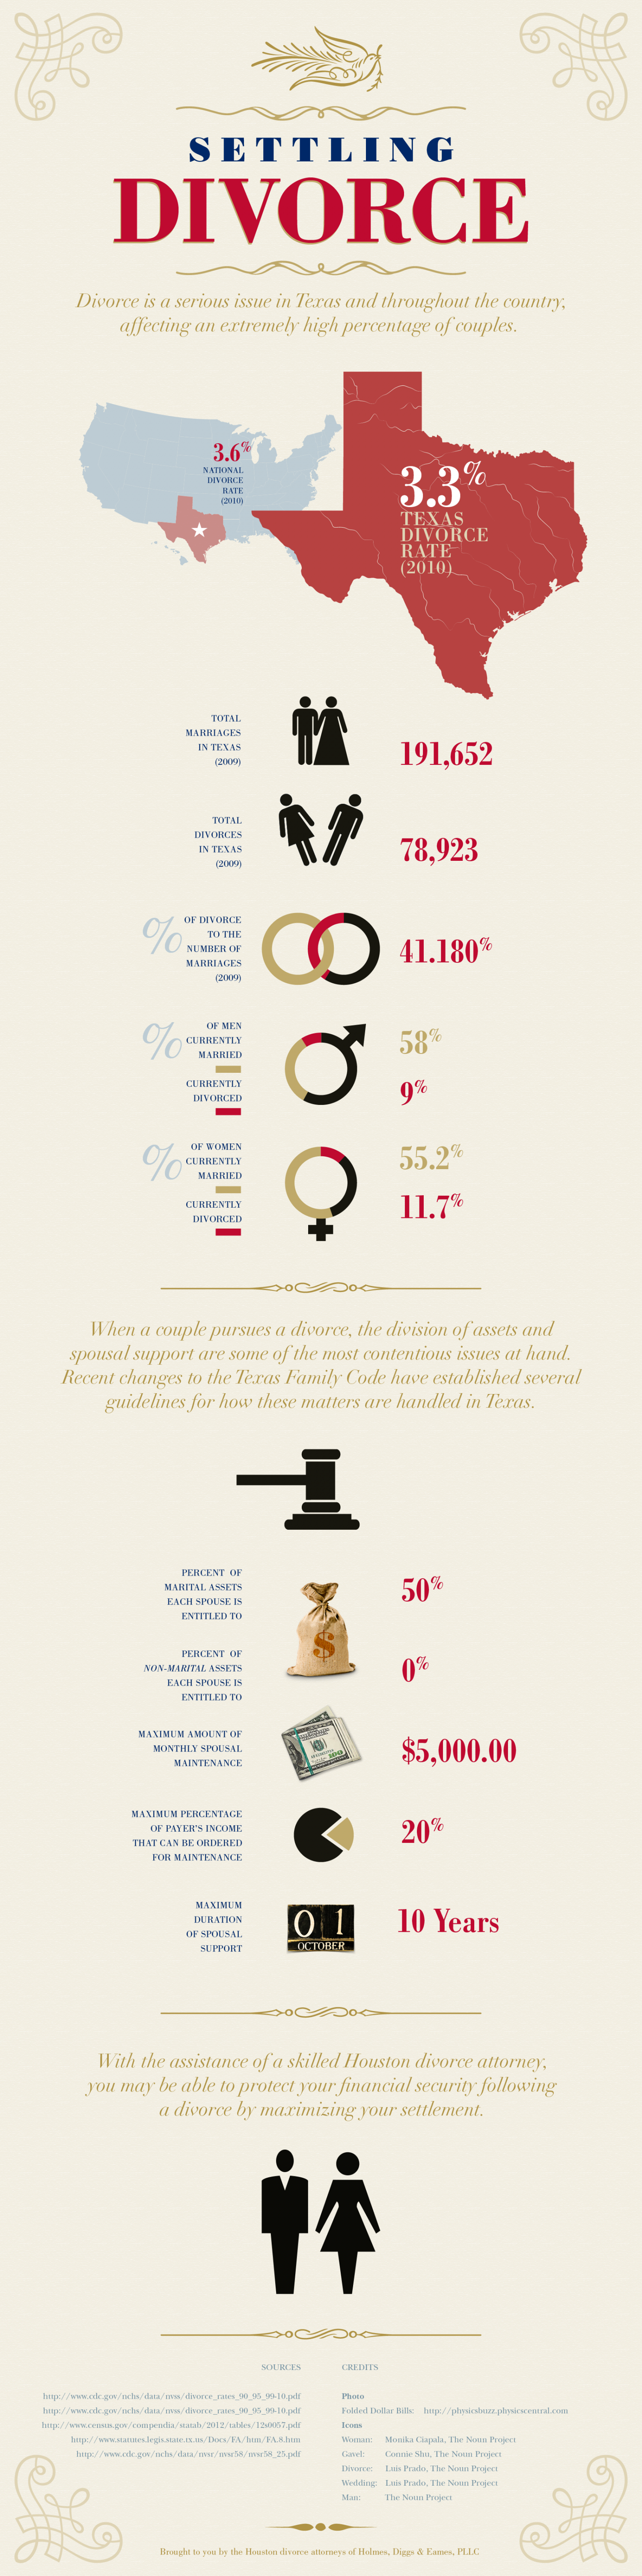 how to become a divorce lawyer Infographic